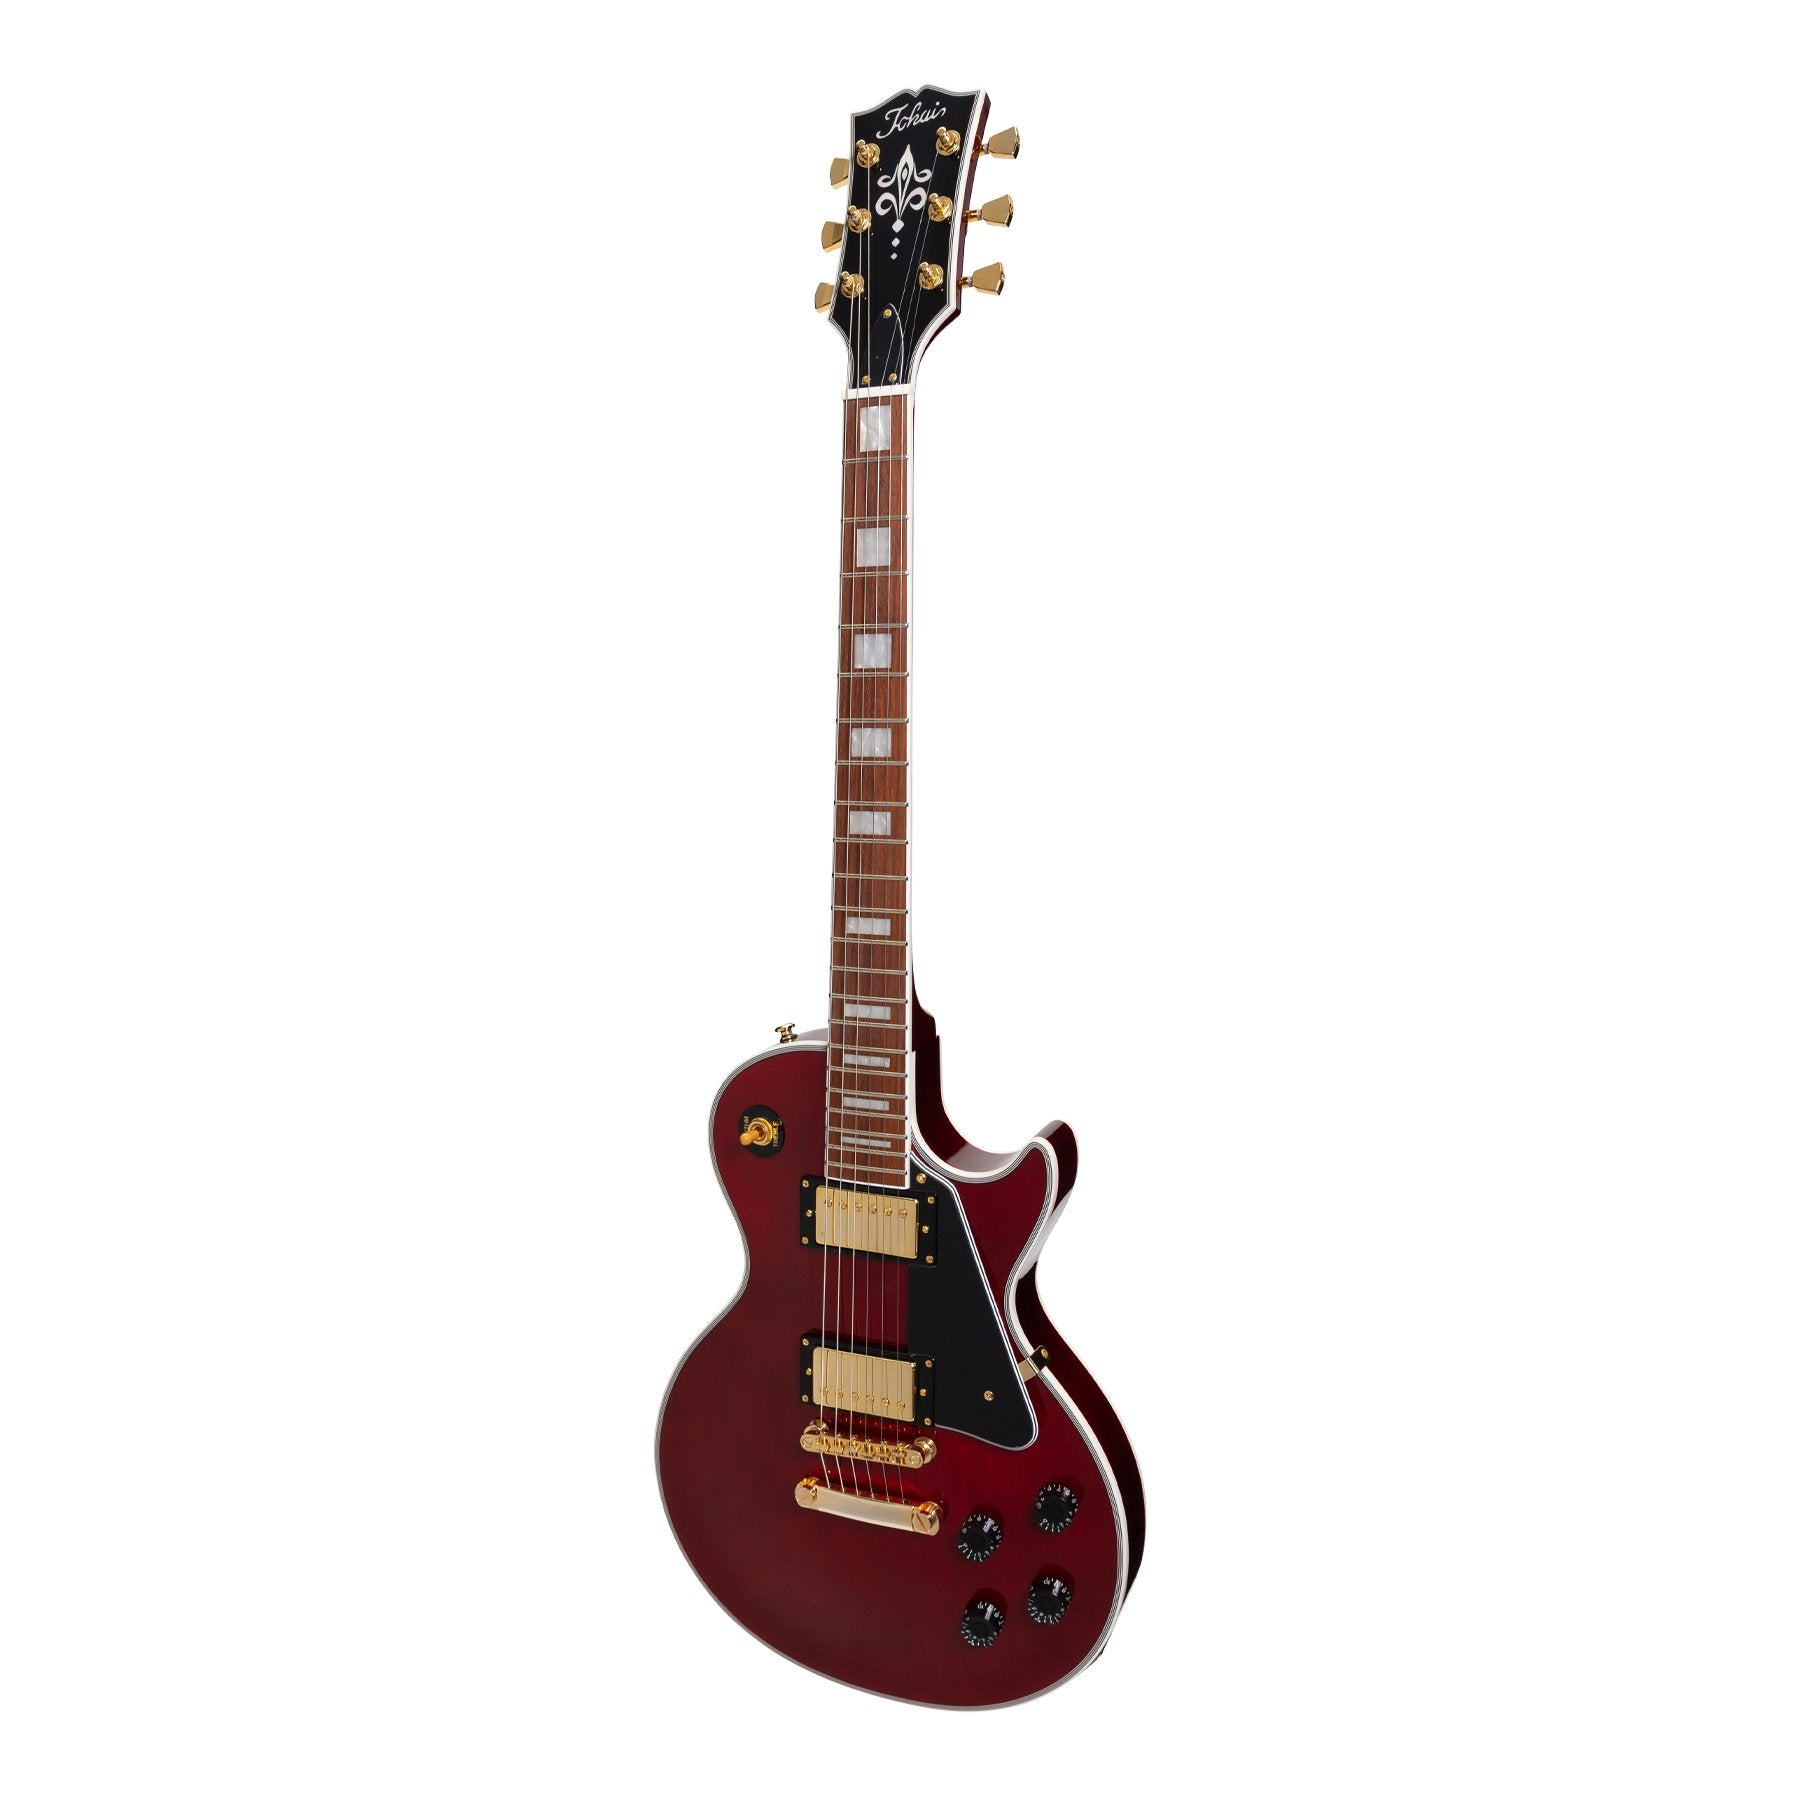 Tokai 'Traditional Series' ALC-62 LP-Custom Style Electric Guitar (Wine Red)-ALC-62-WR